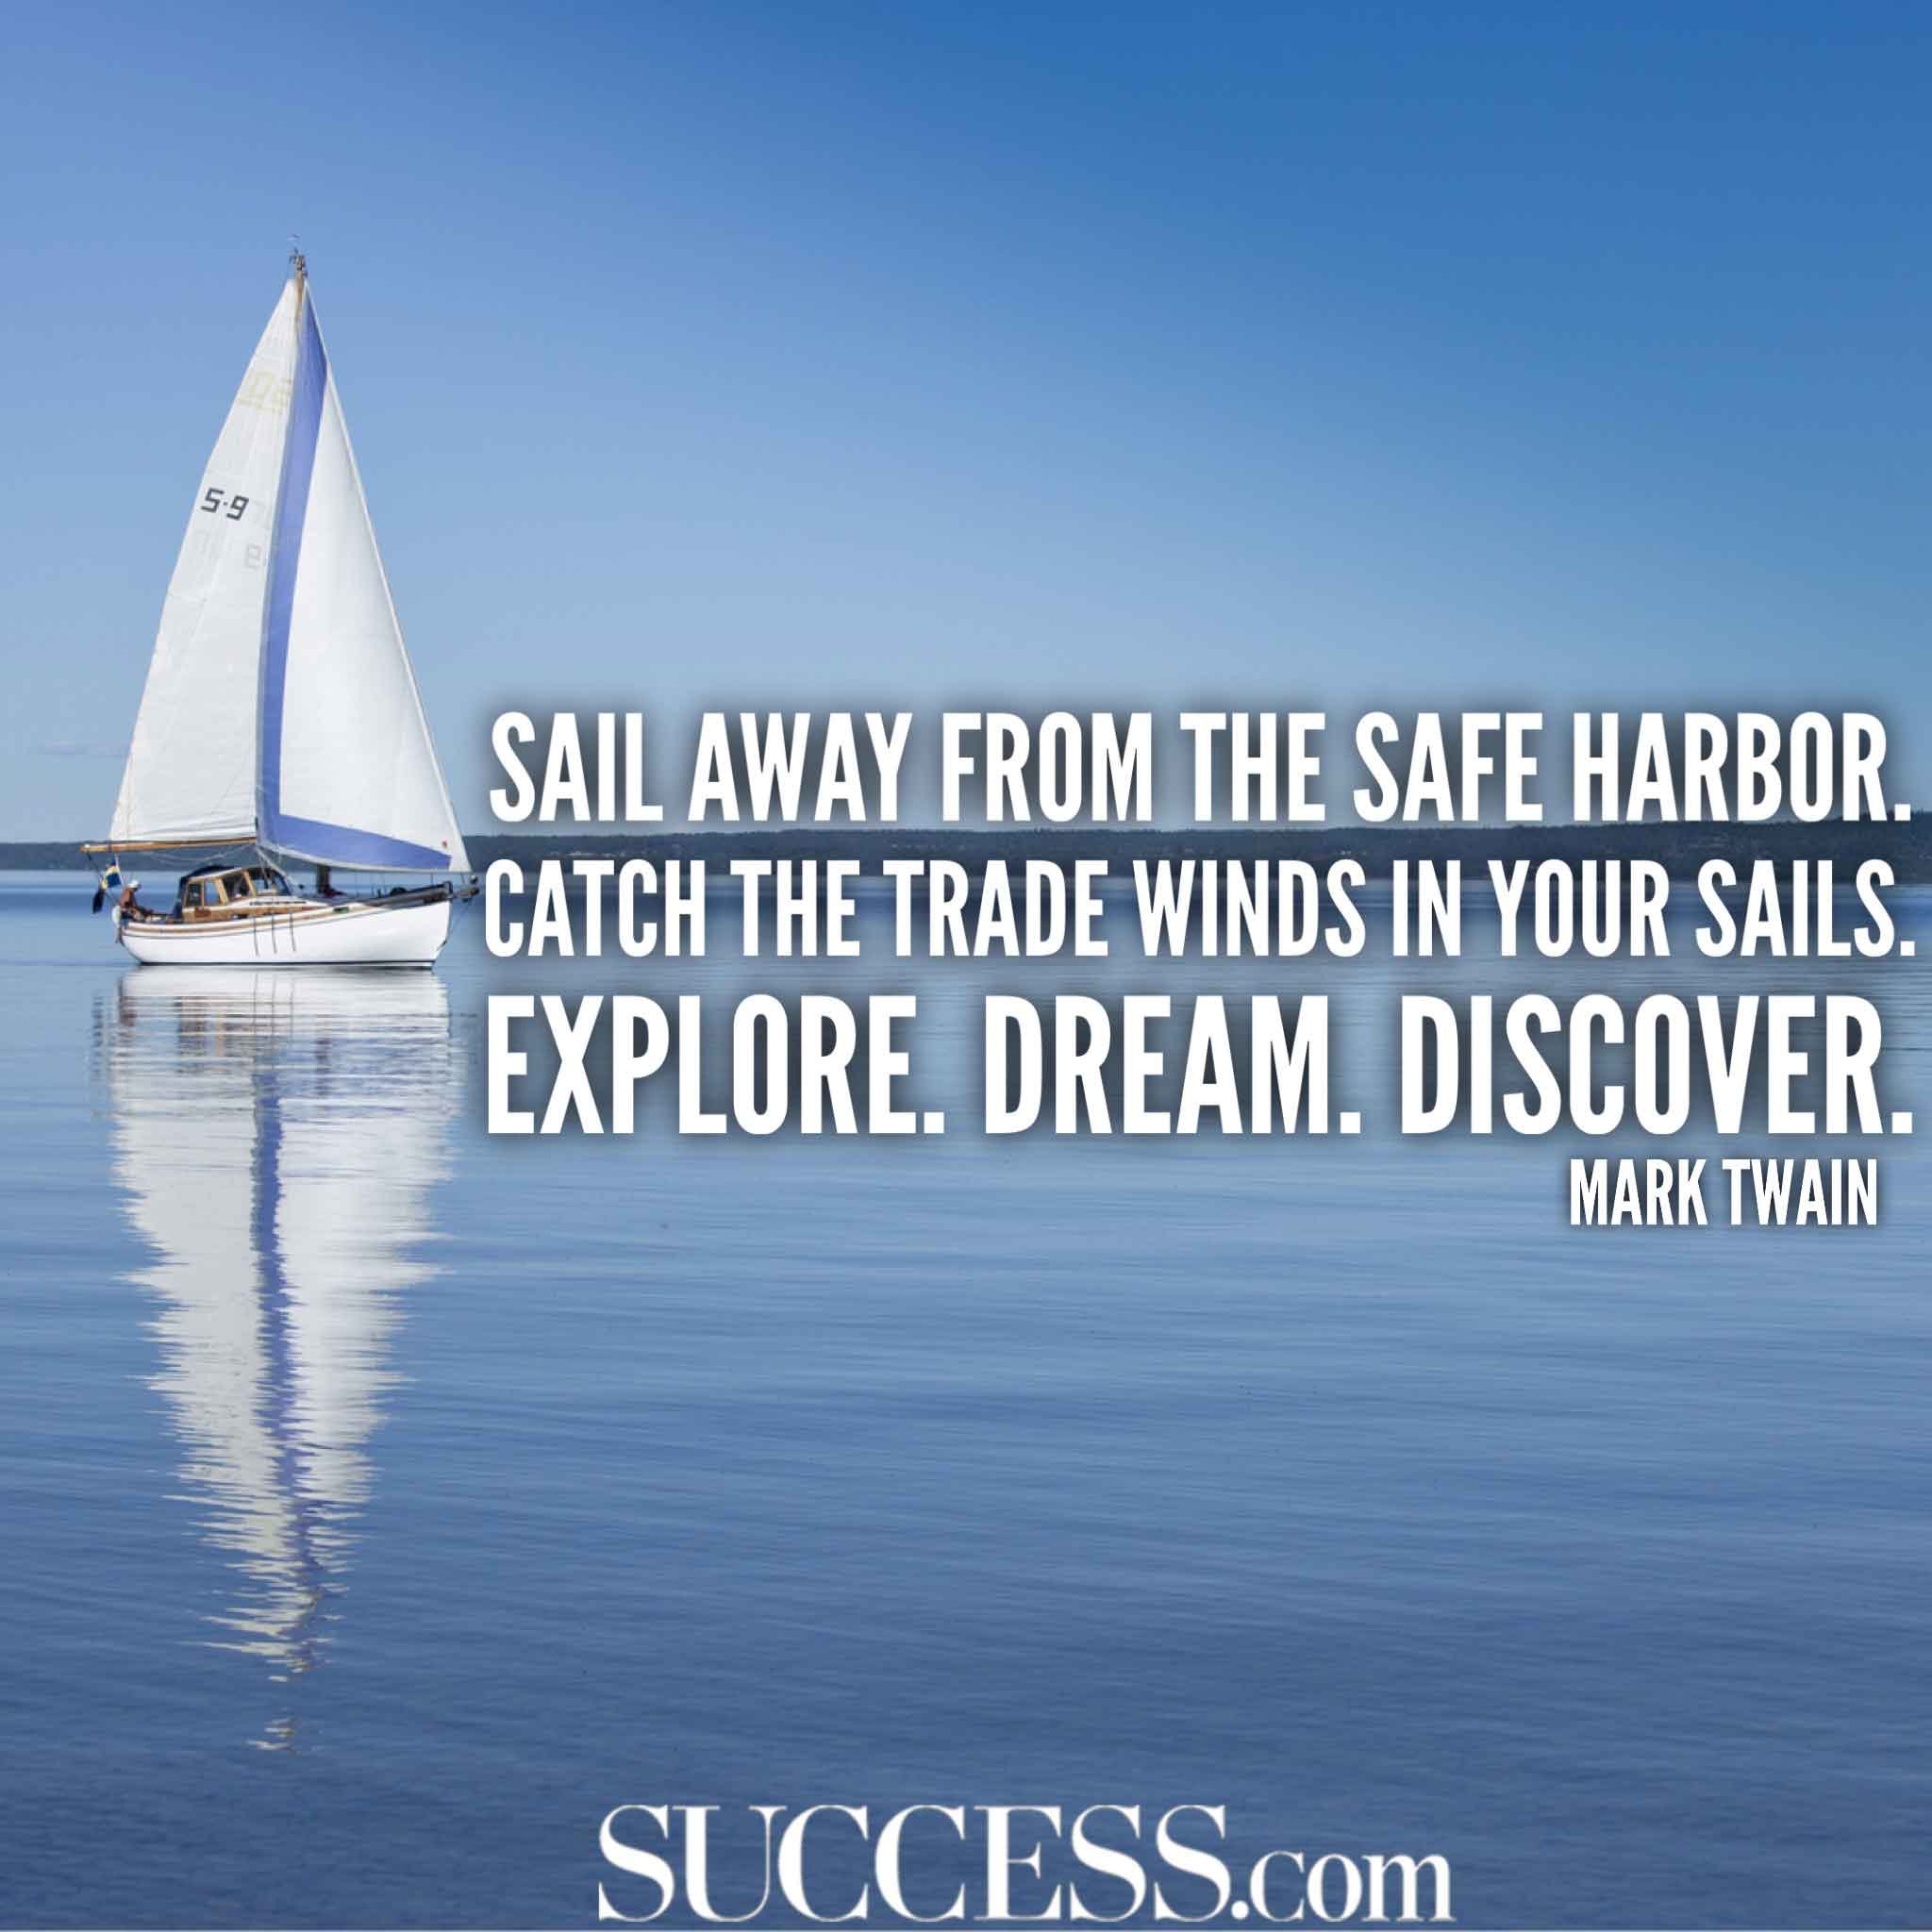 Inspirational Quotes Sailing: 15 Inspiring Quotes About Being A Dreamer